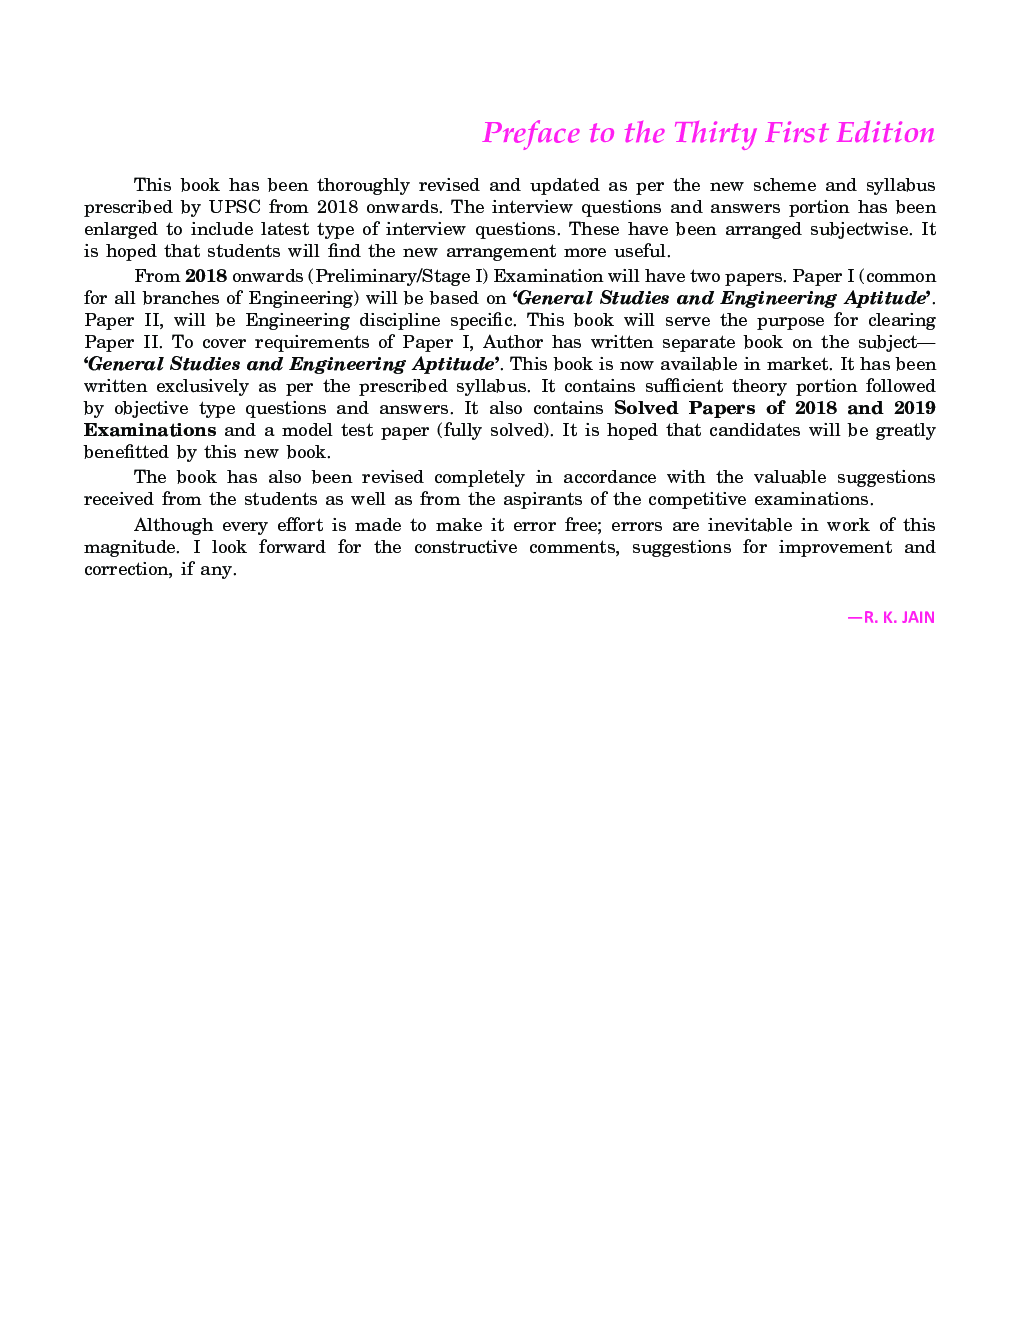 Mechanical Engineering For Competitions - Page 4